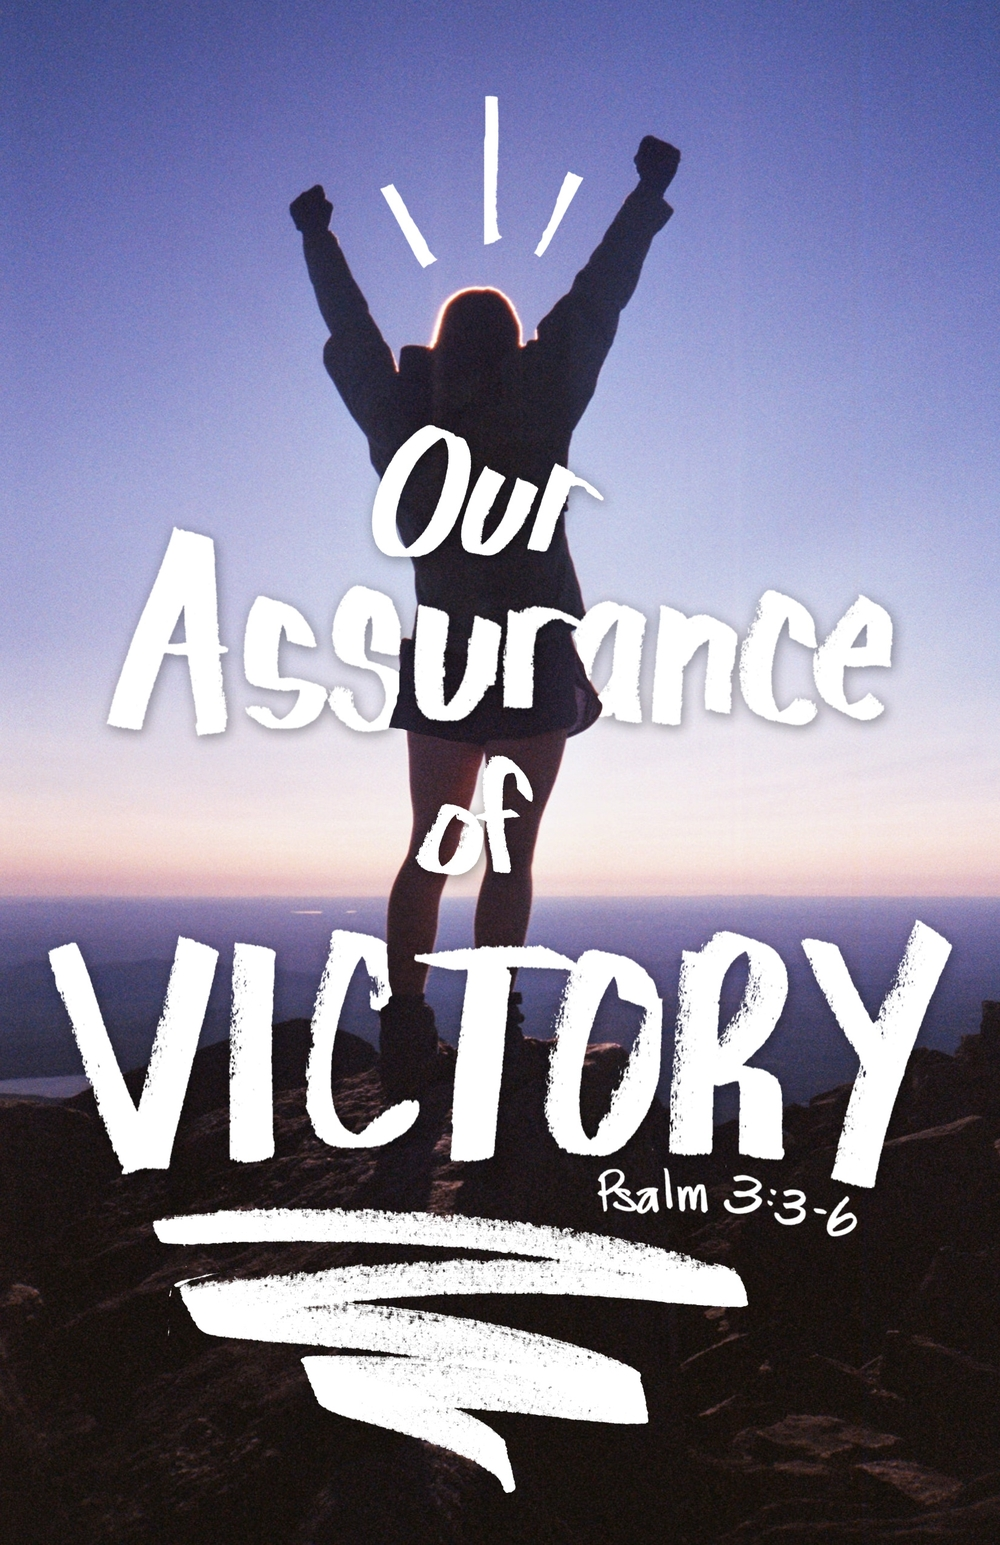 Our Assurance of Victory